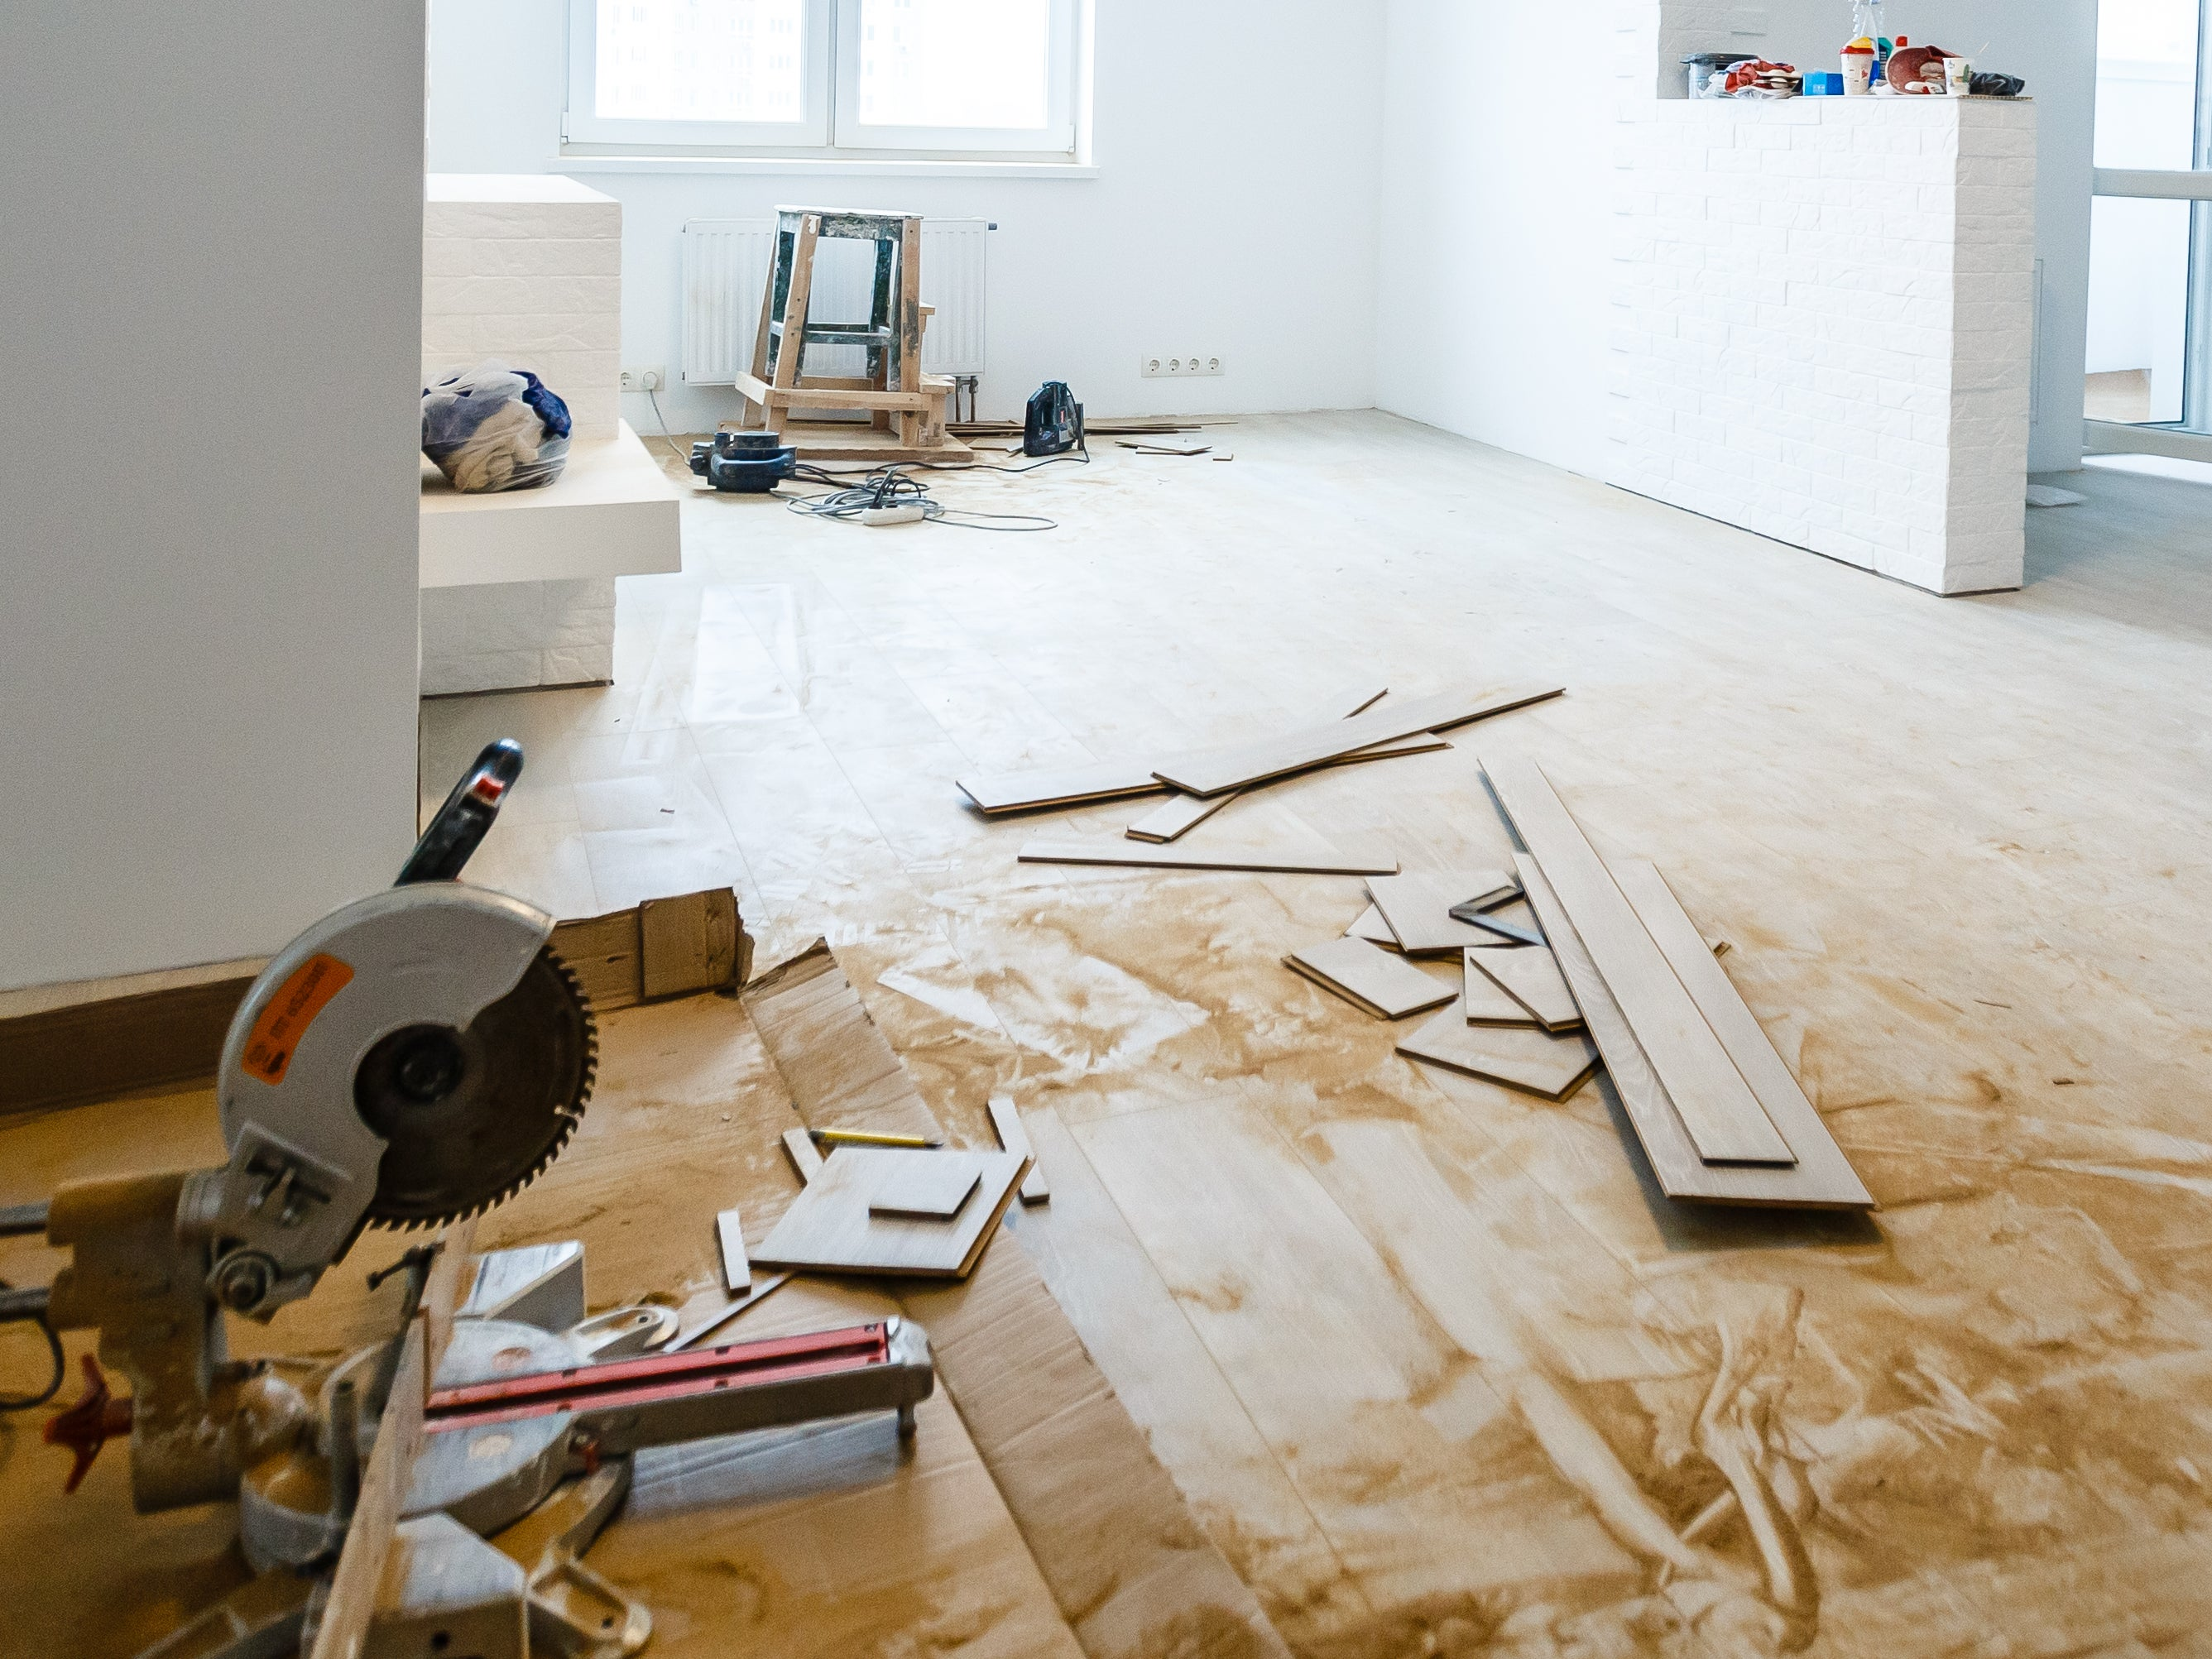 How Much Does It Cost To Remodel A Home Millionacres